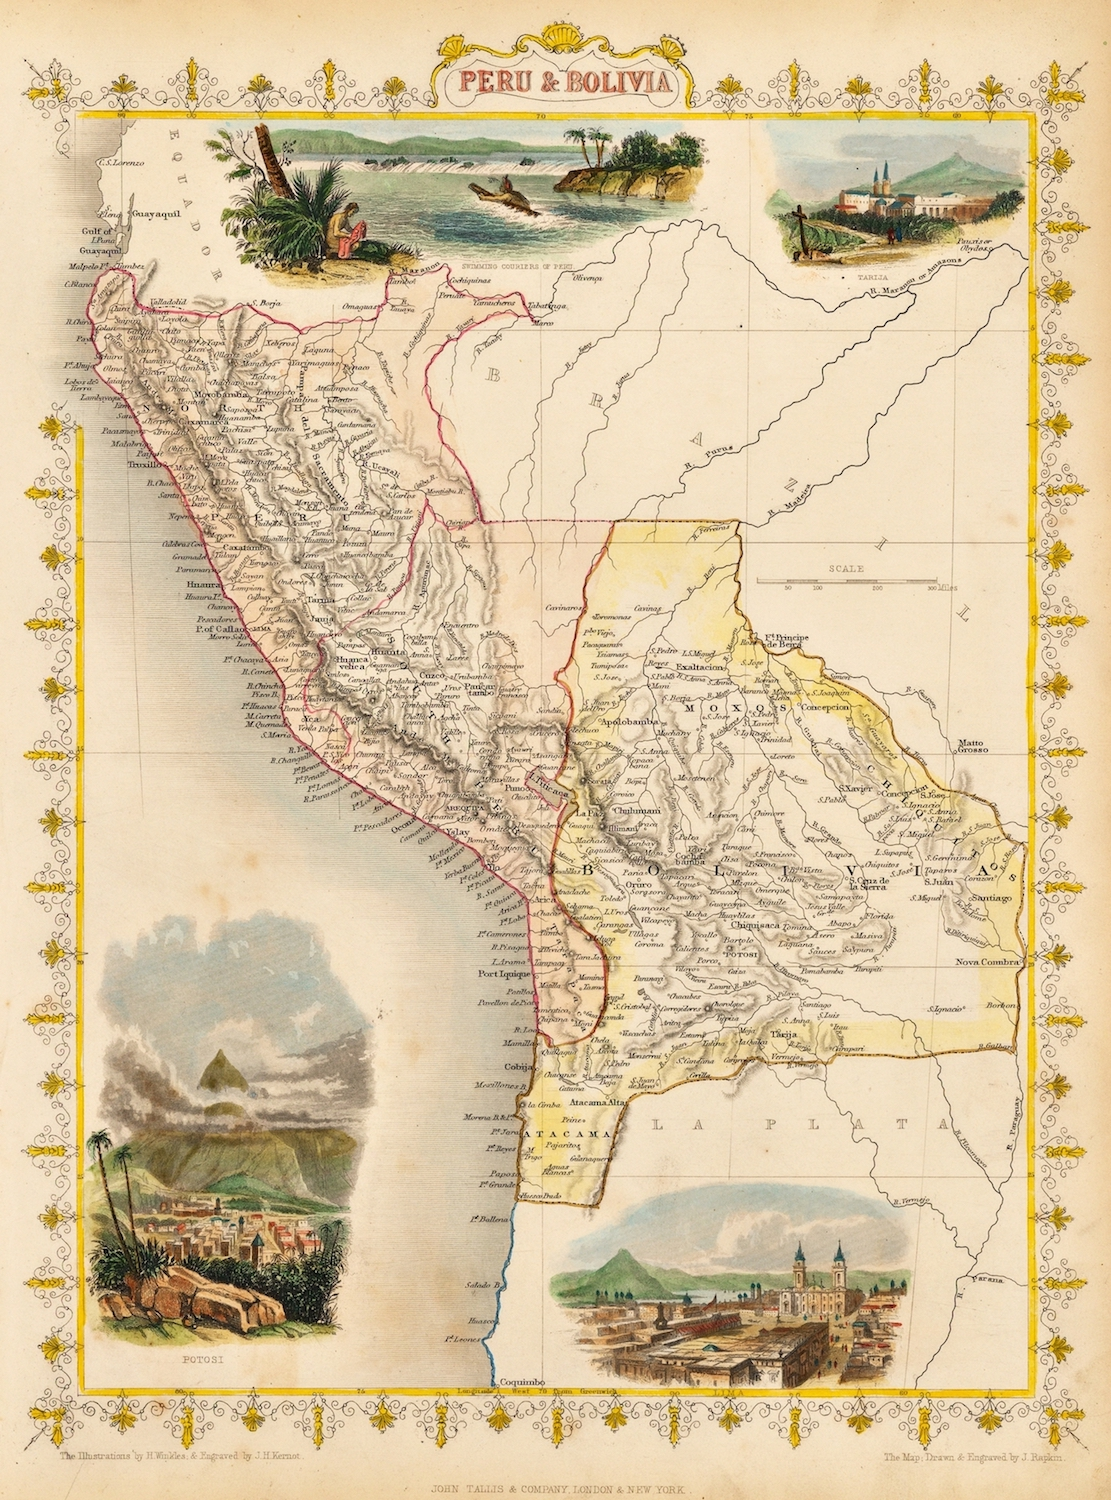 Vintage Map Poster ohn Tallis - Peru & Bolivia (1851) Classic Canvas Paintings Vintage Wall Posters Stickers Home Decor Gift